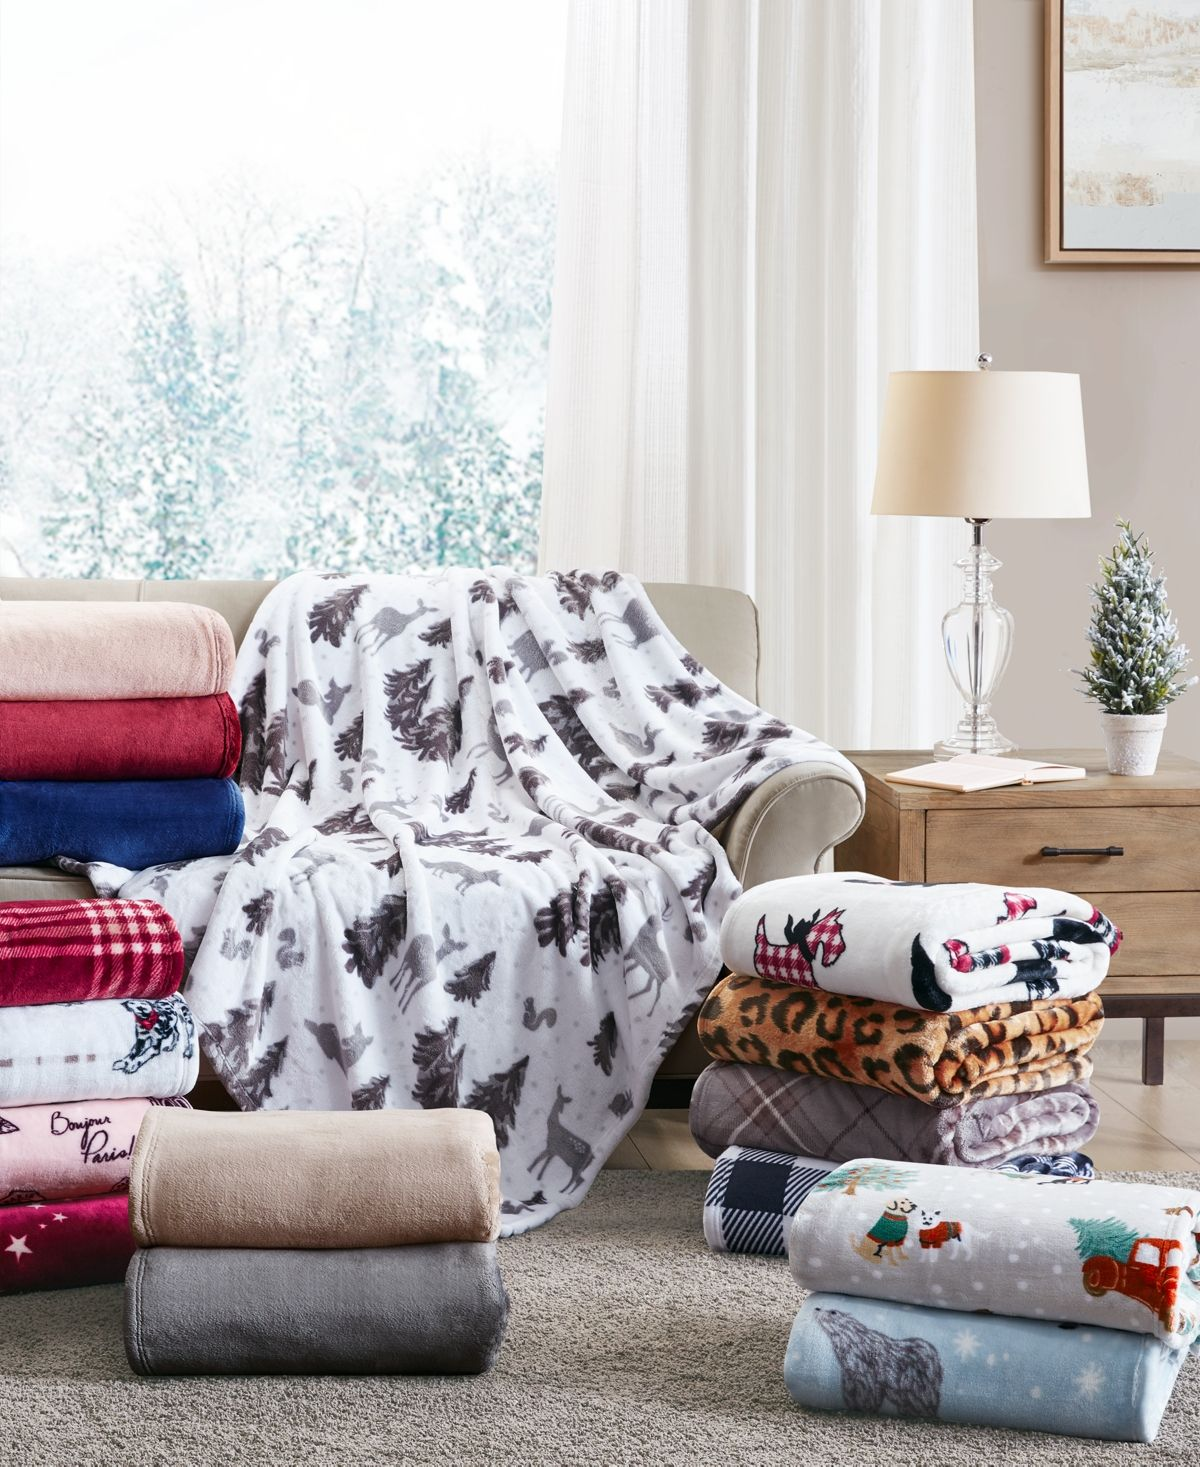 Crafted with soft plush fabric, this Charter Club plush throw adds cozy comfort and style to any room.